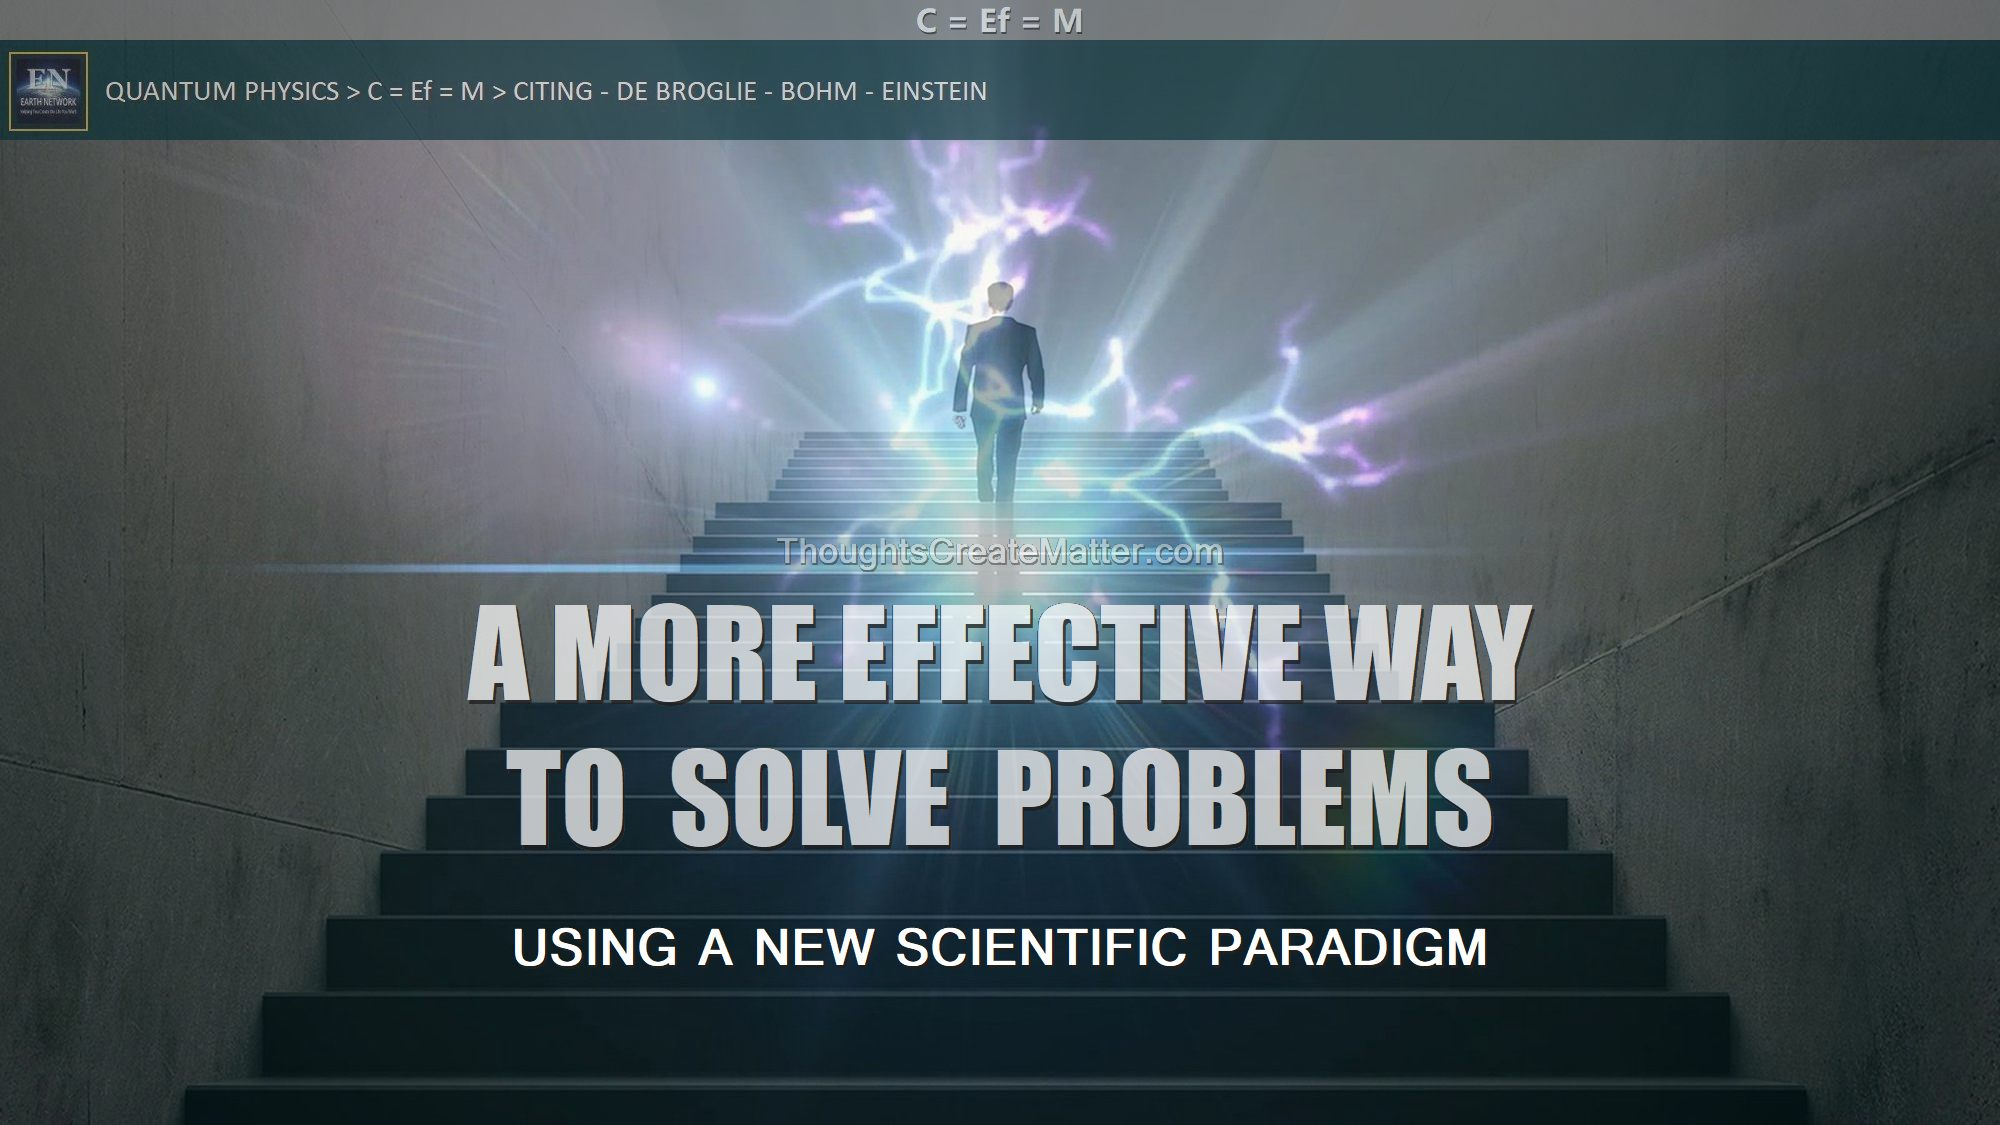 man-ascending-stains-affirms-a-problem-solving-more-effective-method-to-find-answers-achieve-goals-fast-efficiently-metaphysics-1